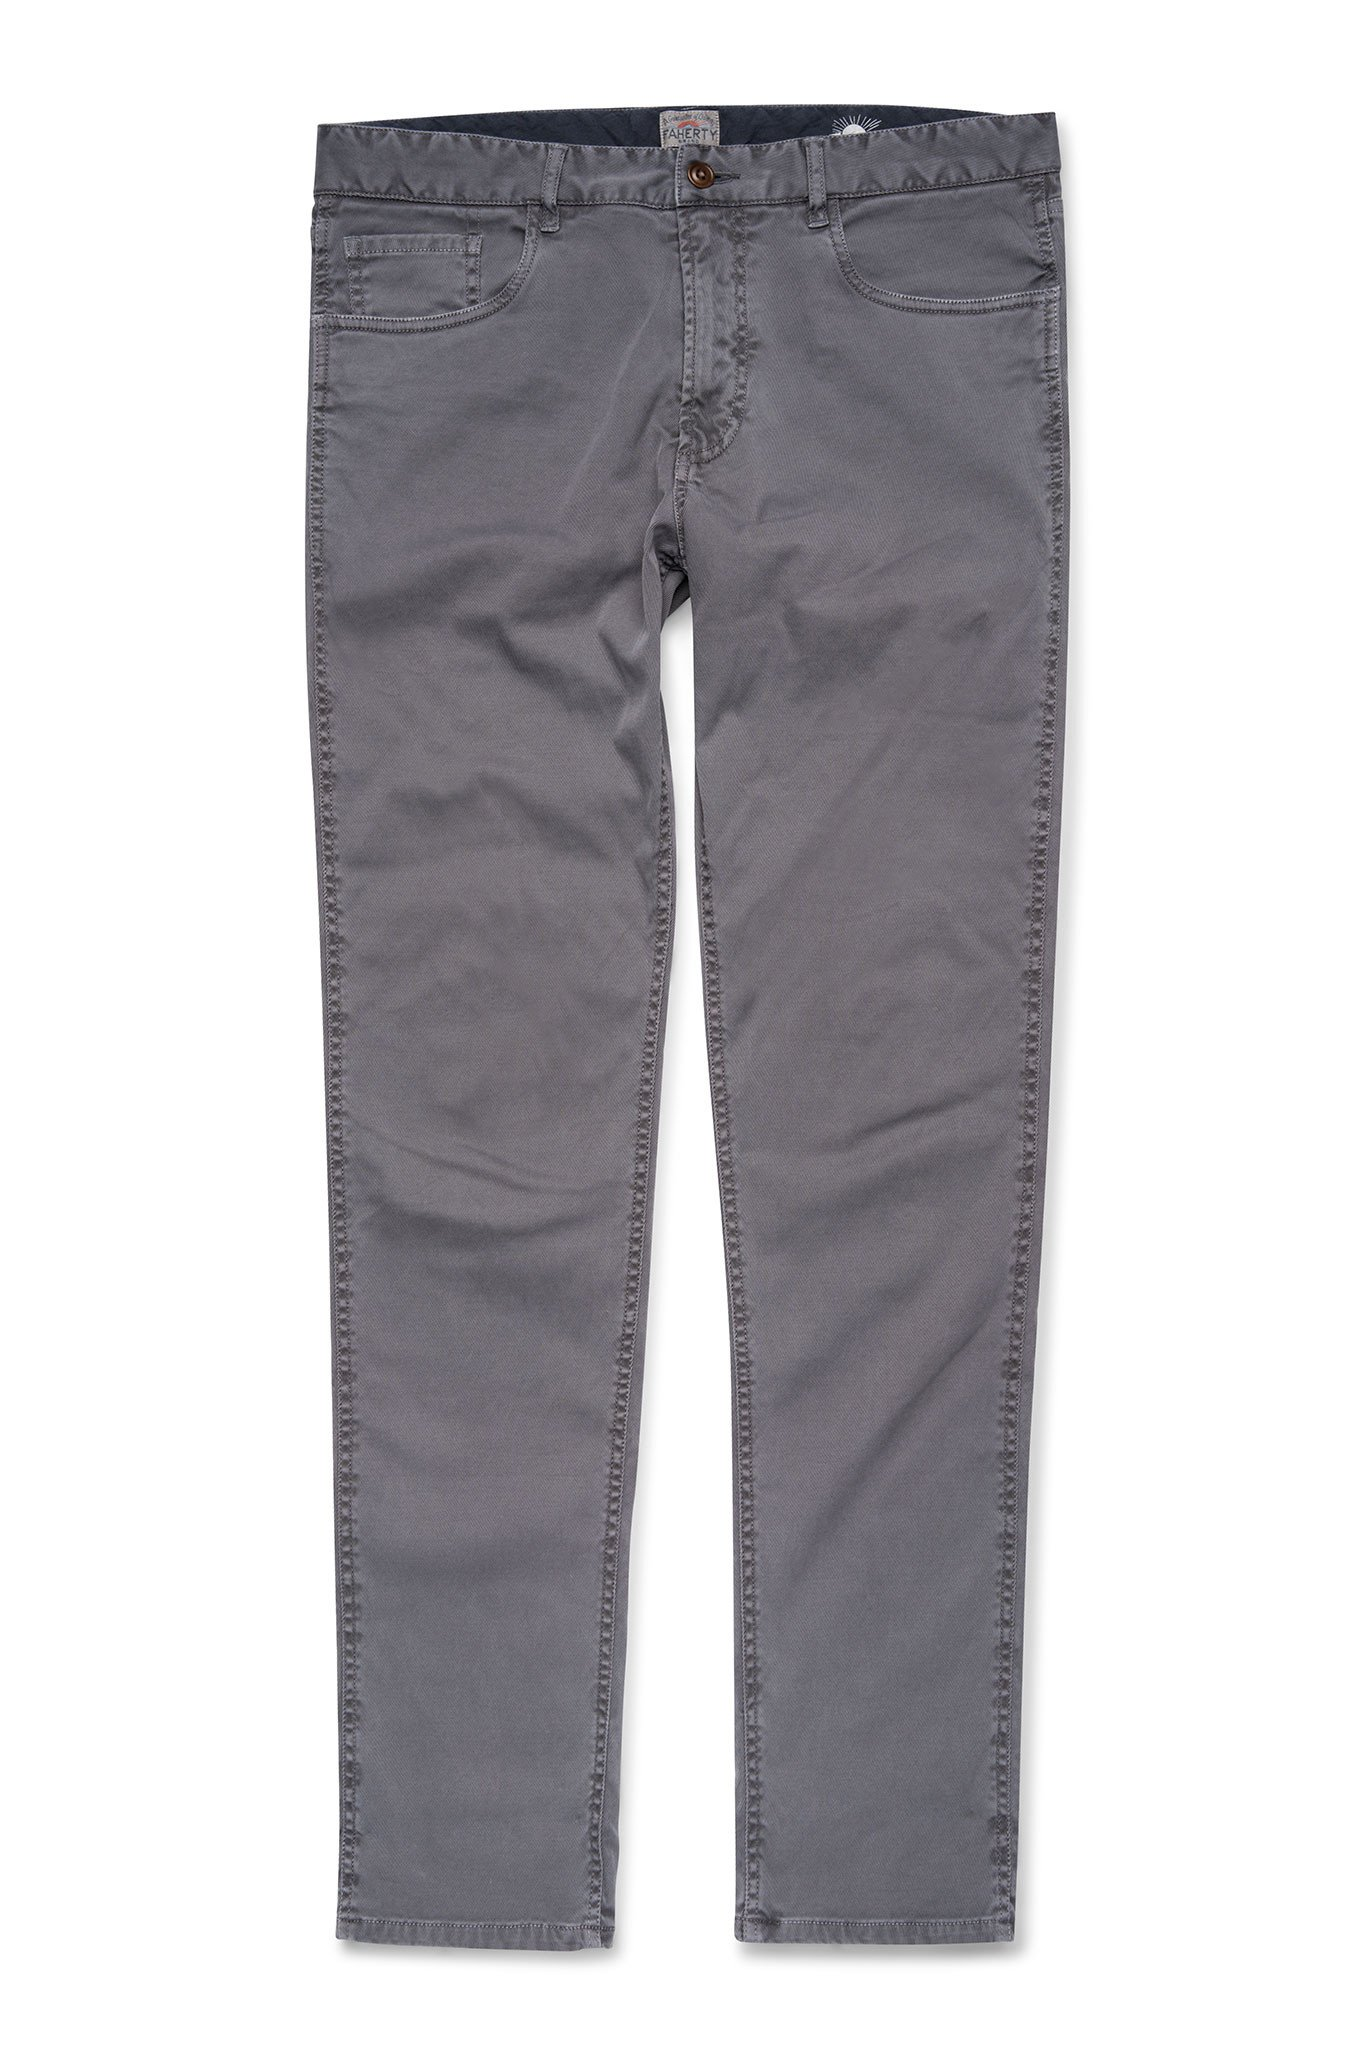 COMFORT TWILL JEAN  RUGGED GREY